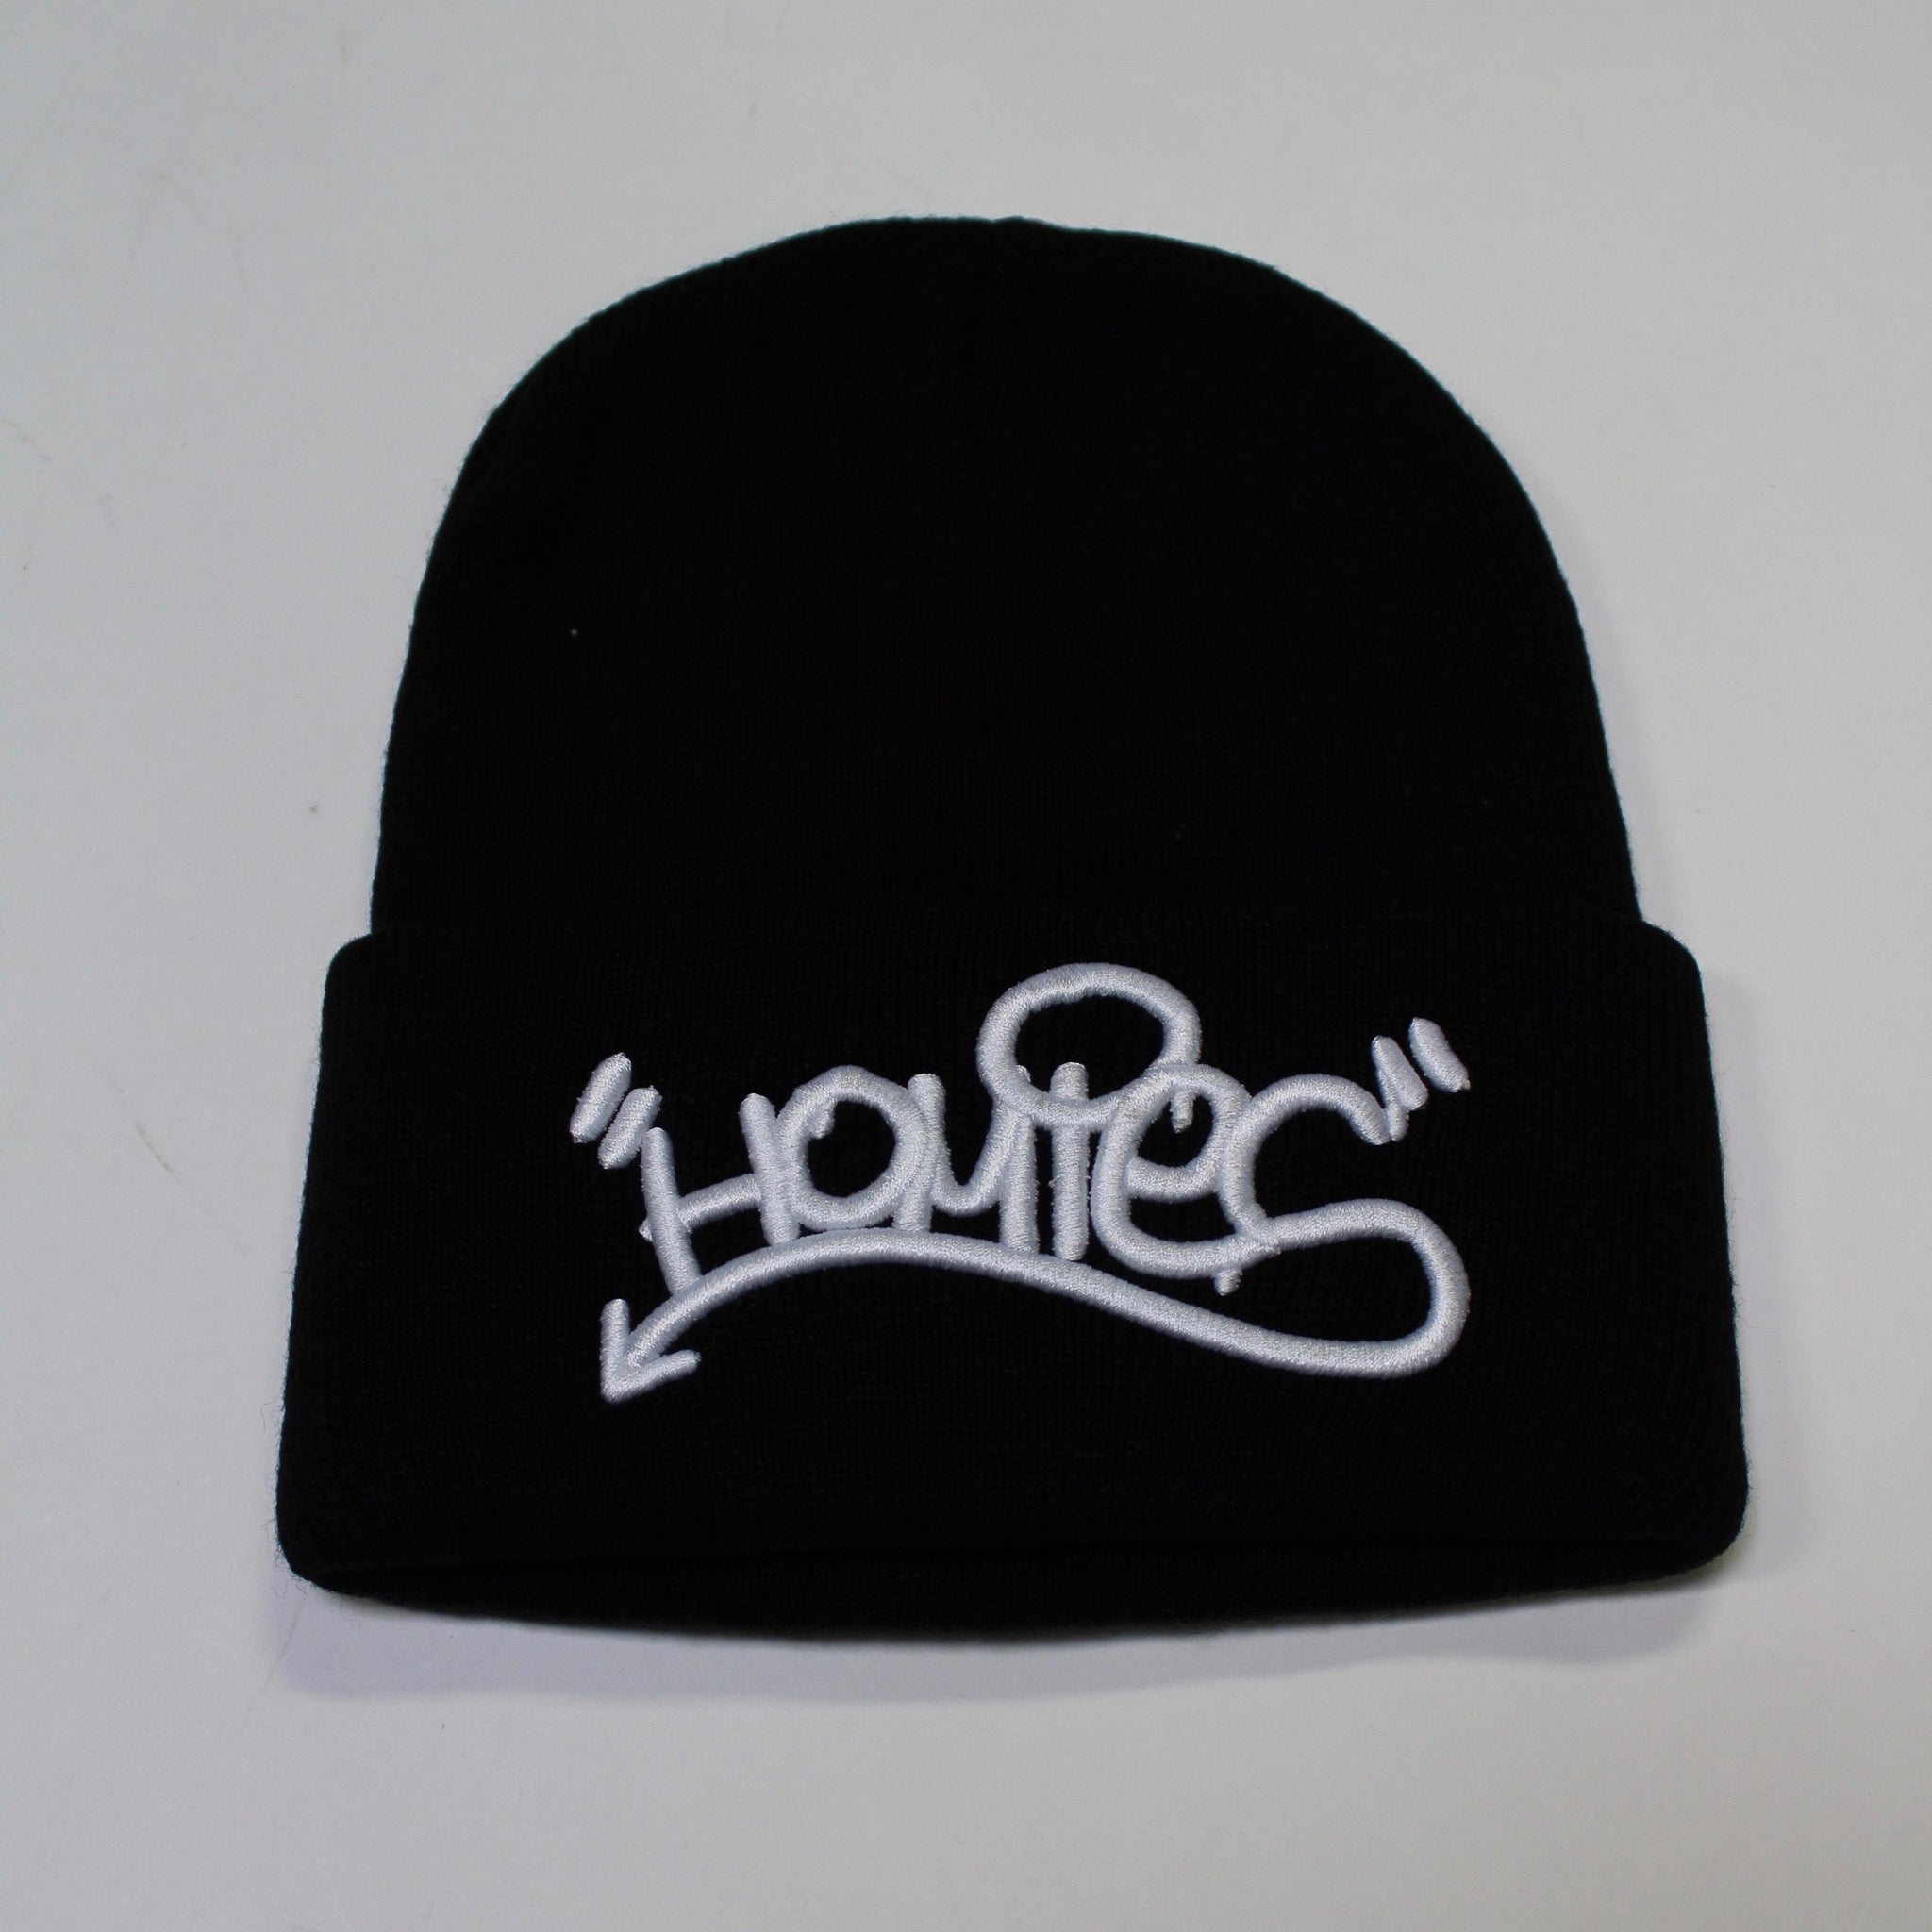 HOMIES GRAFFITI BLACK BEANIE